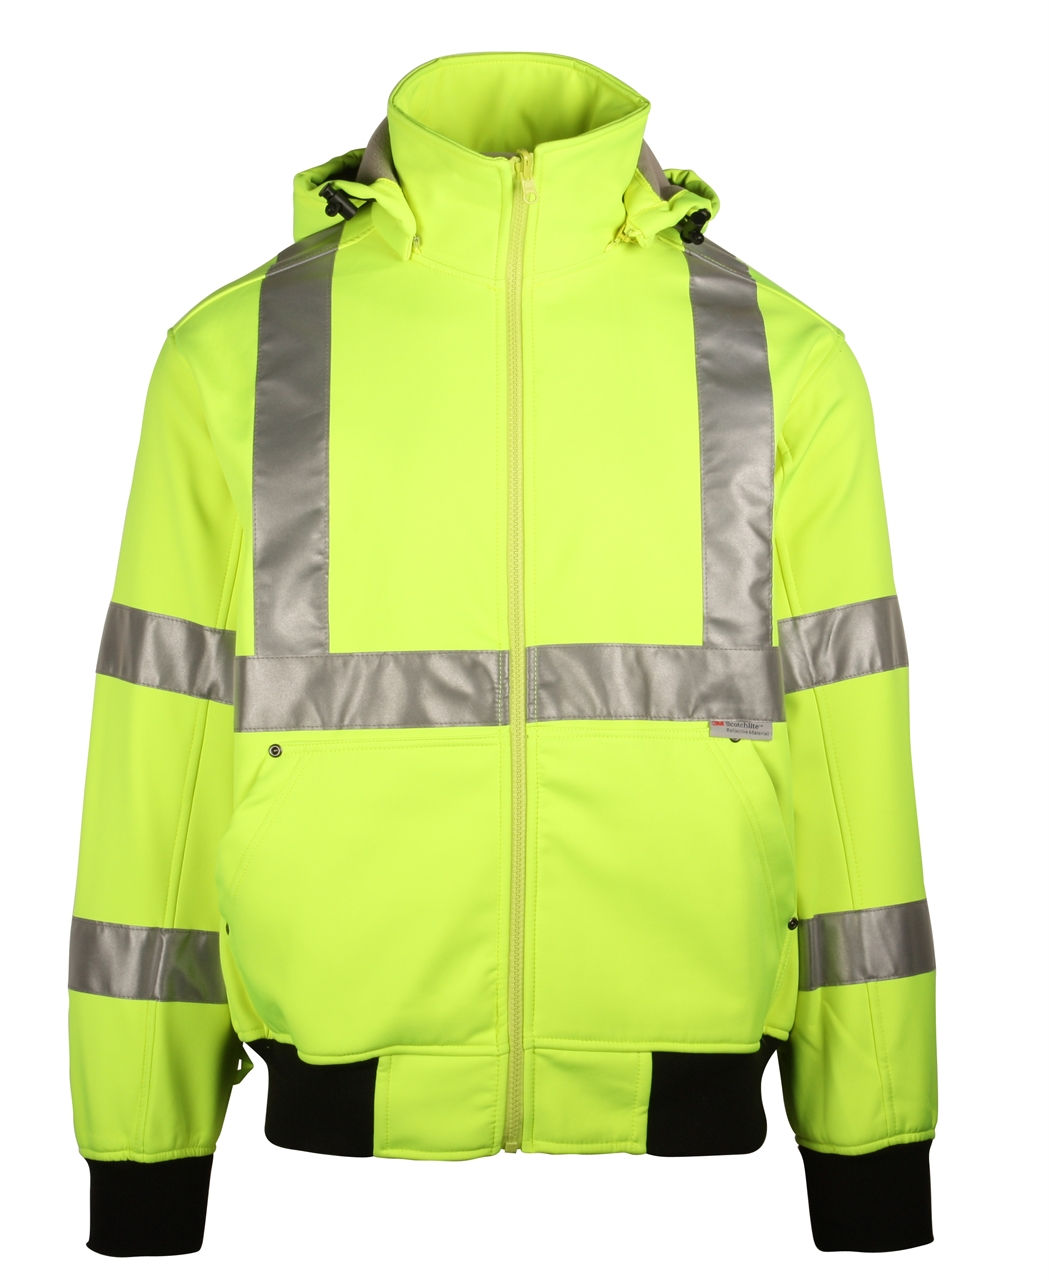 Picture of Sumaggo Hv Soft Shell Jacket With Detachable Hood